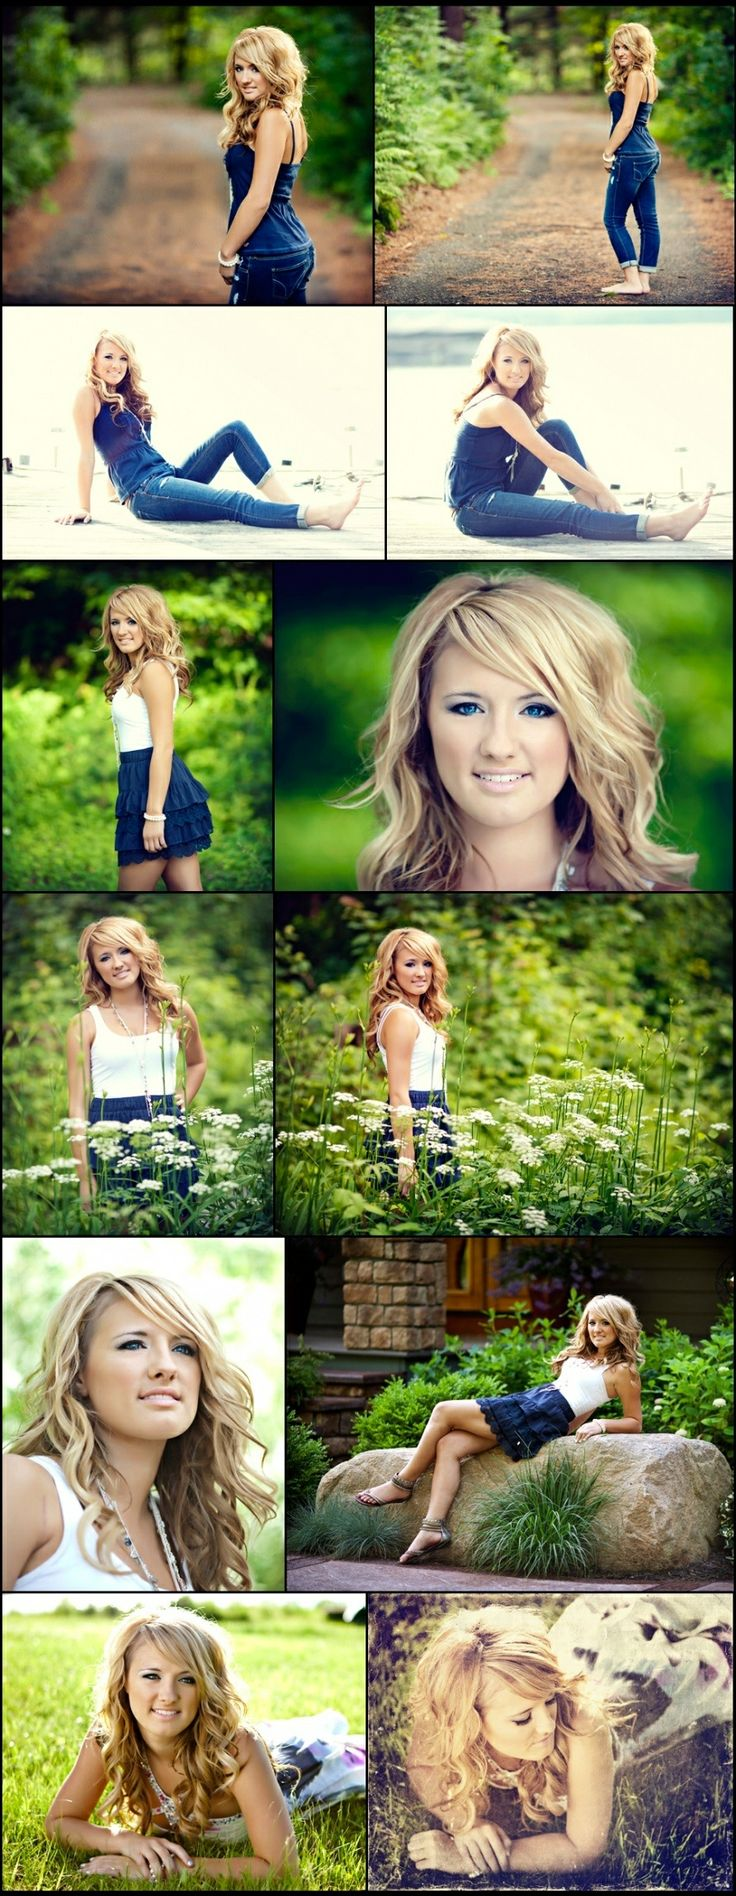 For Senior Pictures!